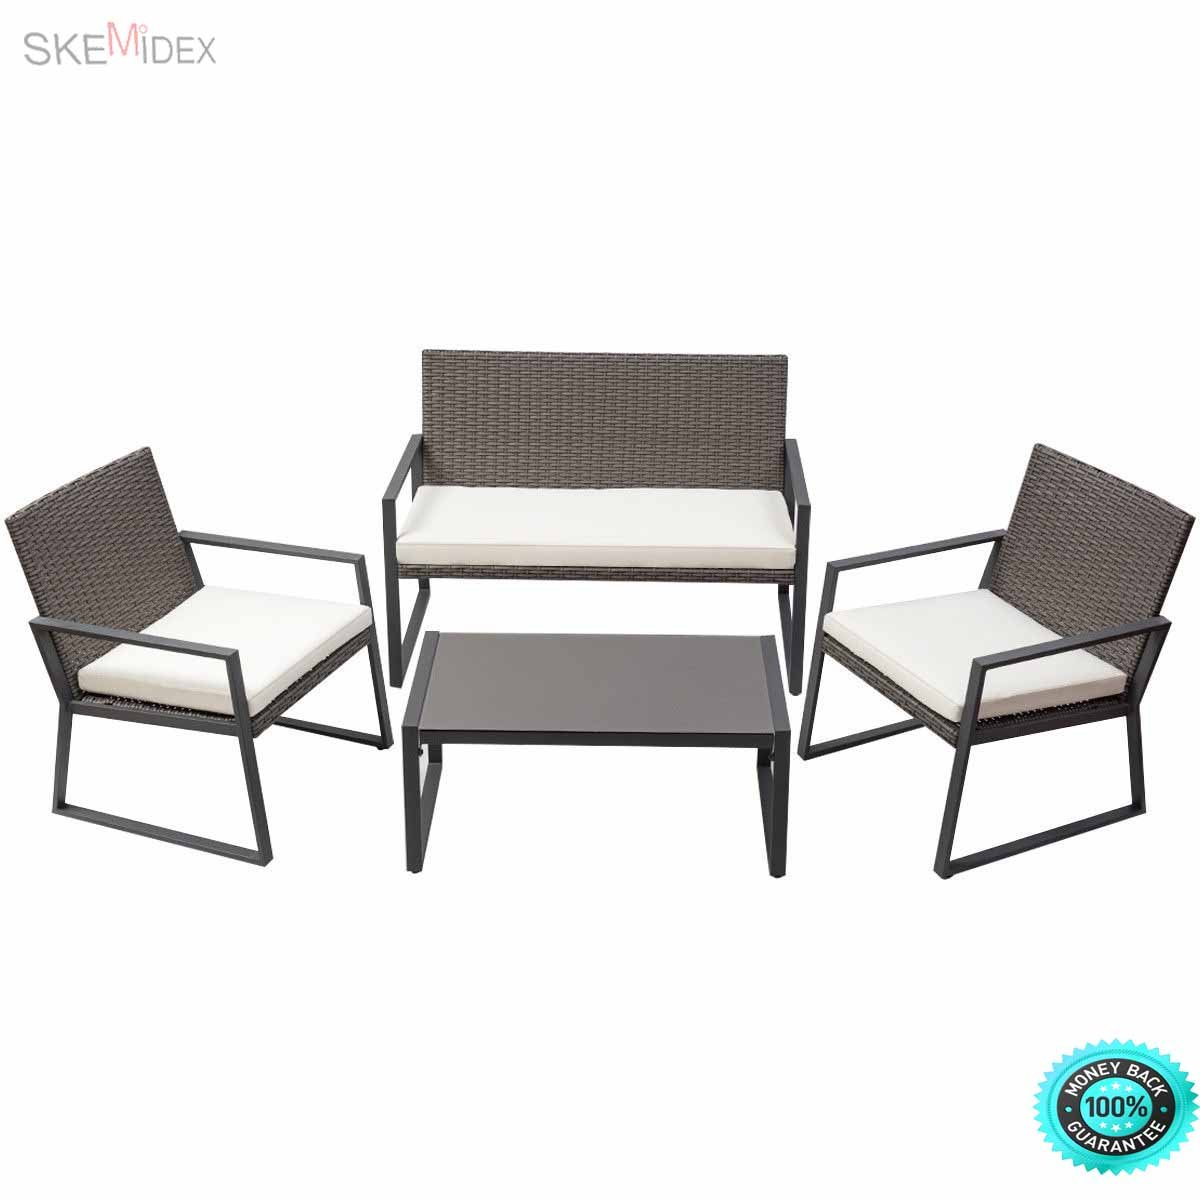 SKEMiDEX--- 4PCS Rattan Patio Furniture Set Wicker Cushioned Seat Sofa Garden Lawn Sofa This rattan sofa set adds additional modern and leisure element to your house. Compact design is perfect.